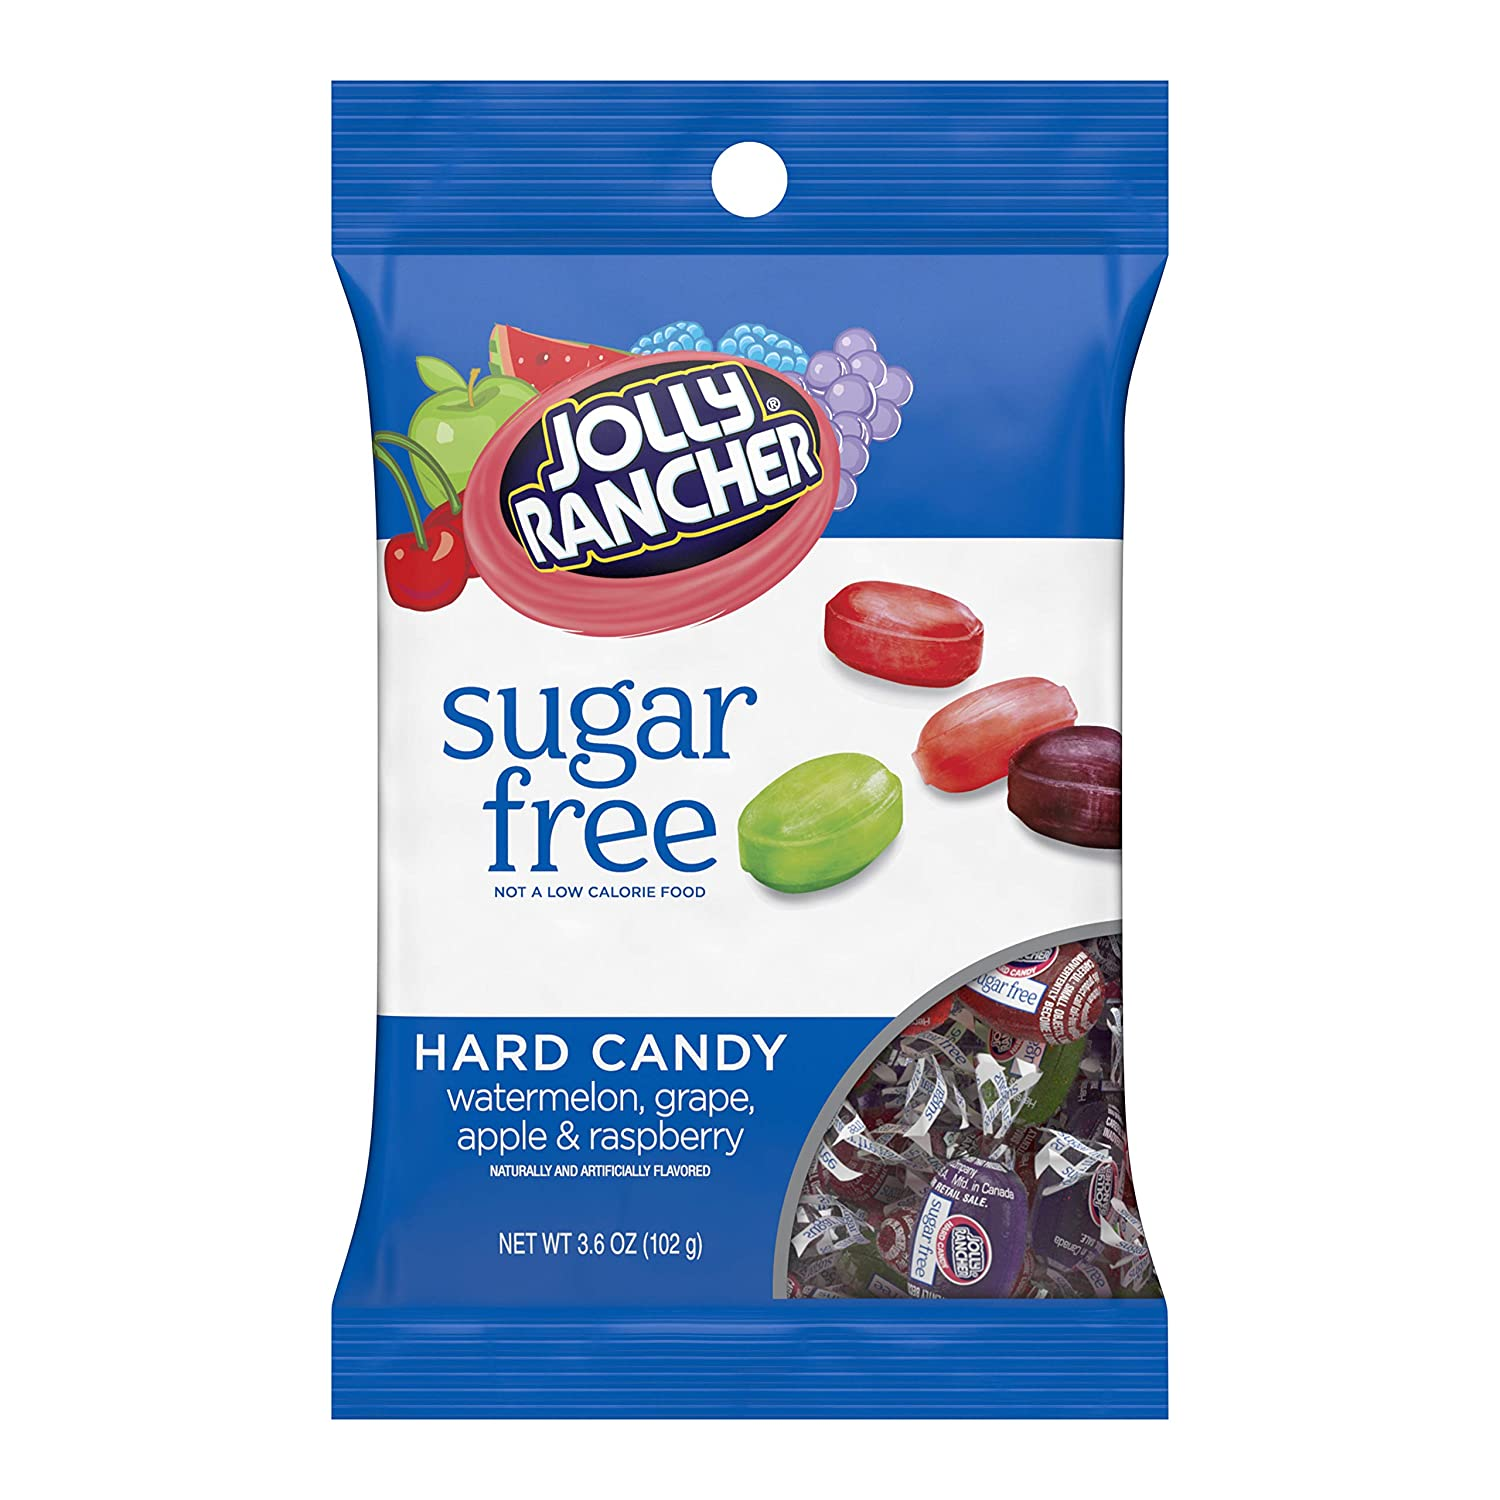 JOLLY RANCHER Sugar Free Hard Candy, 3.6 oz bag, pack of 12